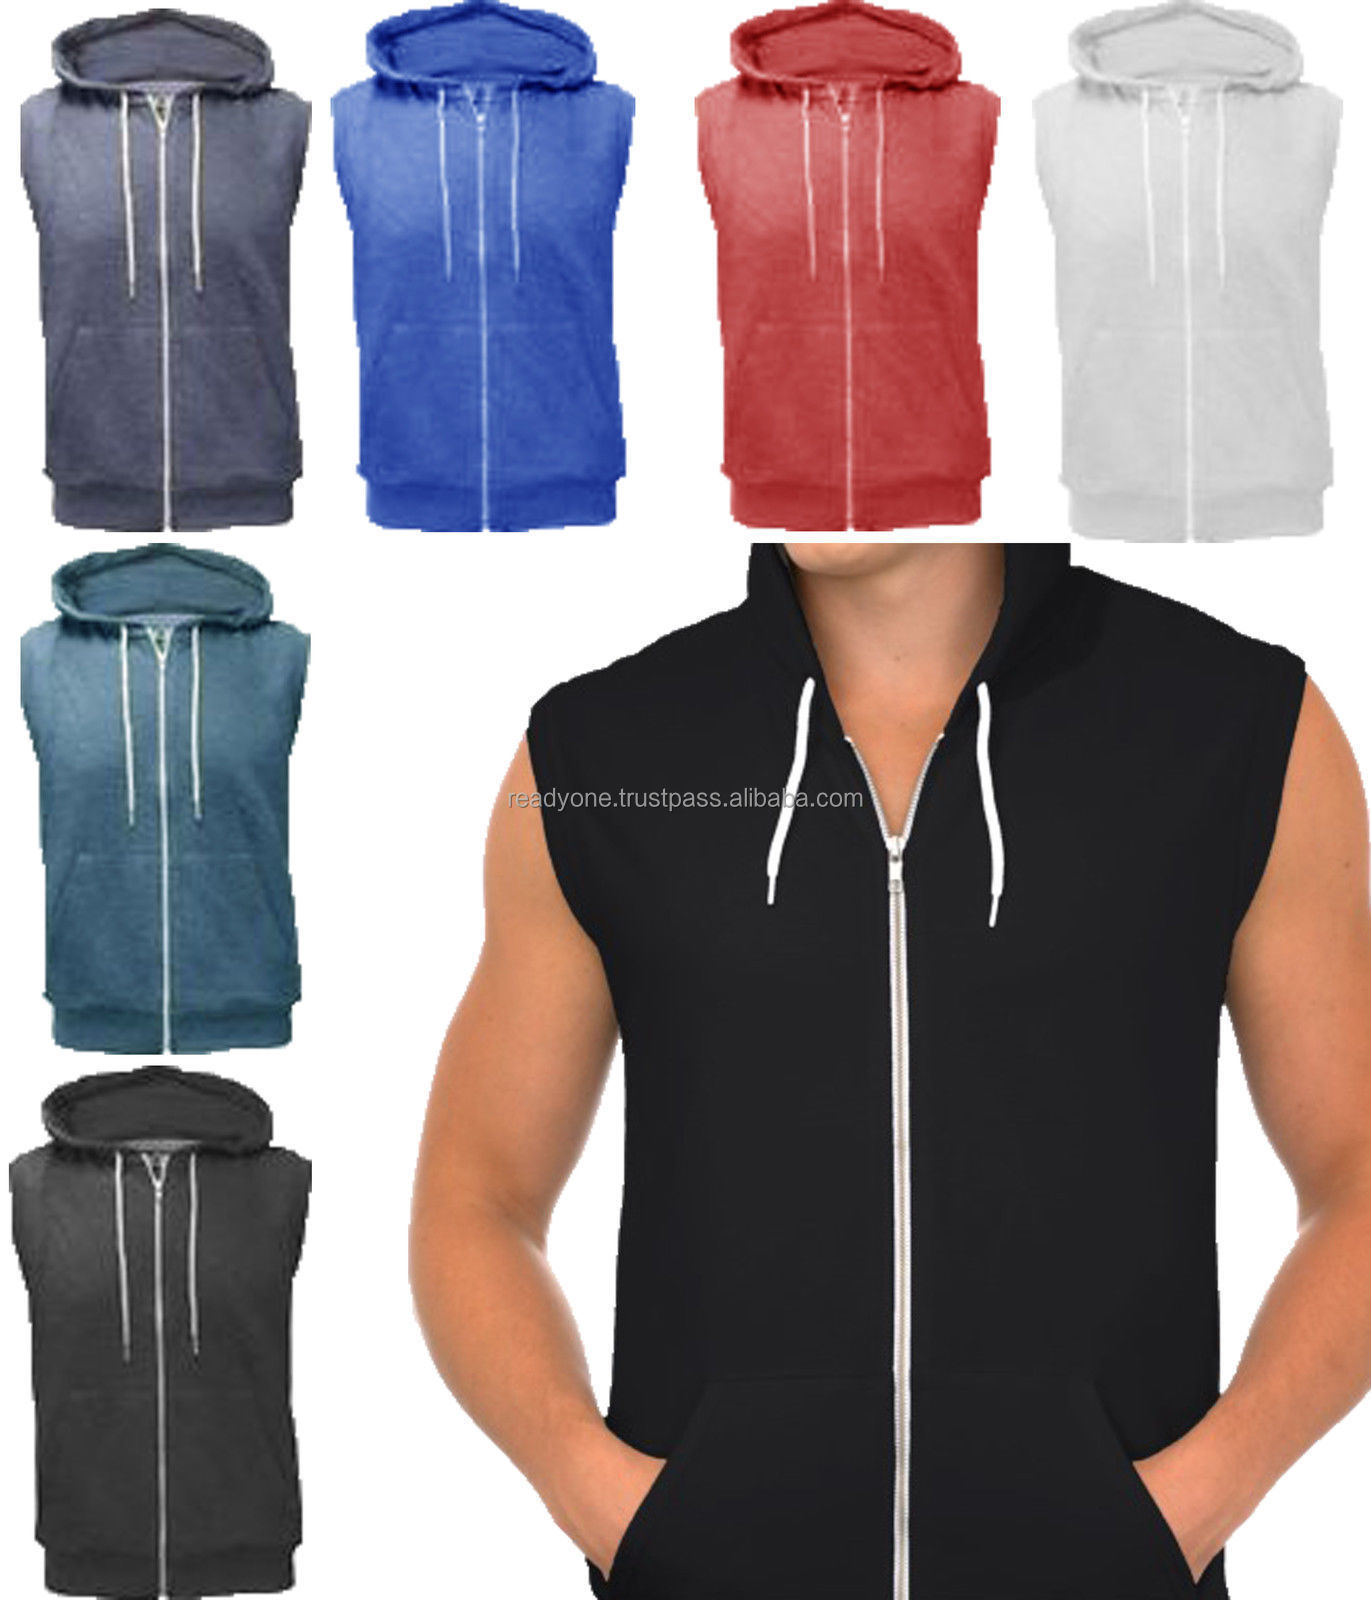 Sleeveless hoodie wholesale baggage clothing for Custom shirts and hoodies cheap